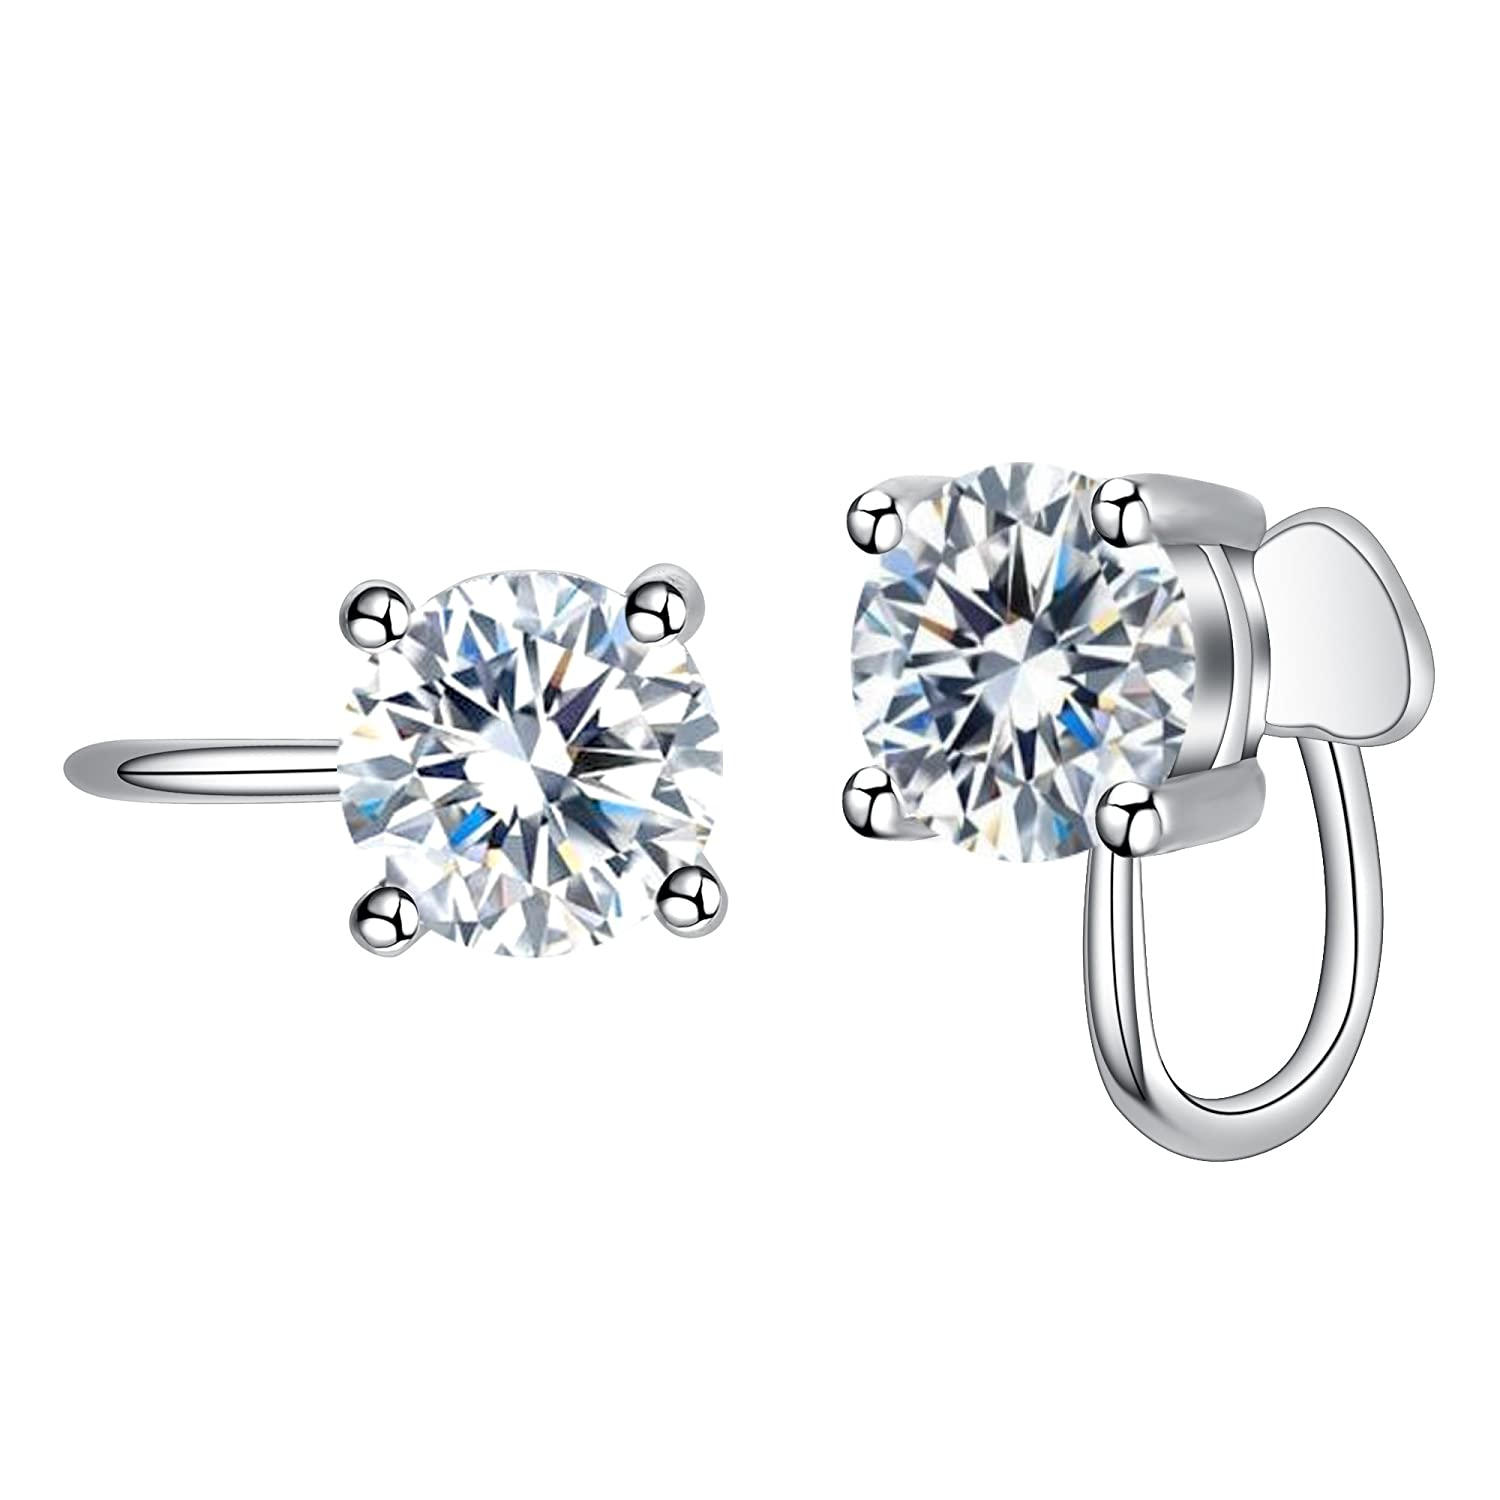 EVER FAITH 925 Sterling Silver Round Cut CZ Prong Setting Gorgeous Leverback Dangle Earrings Clear N09935-1